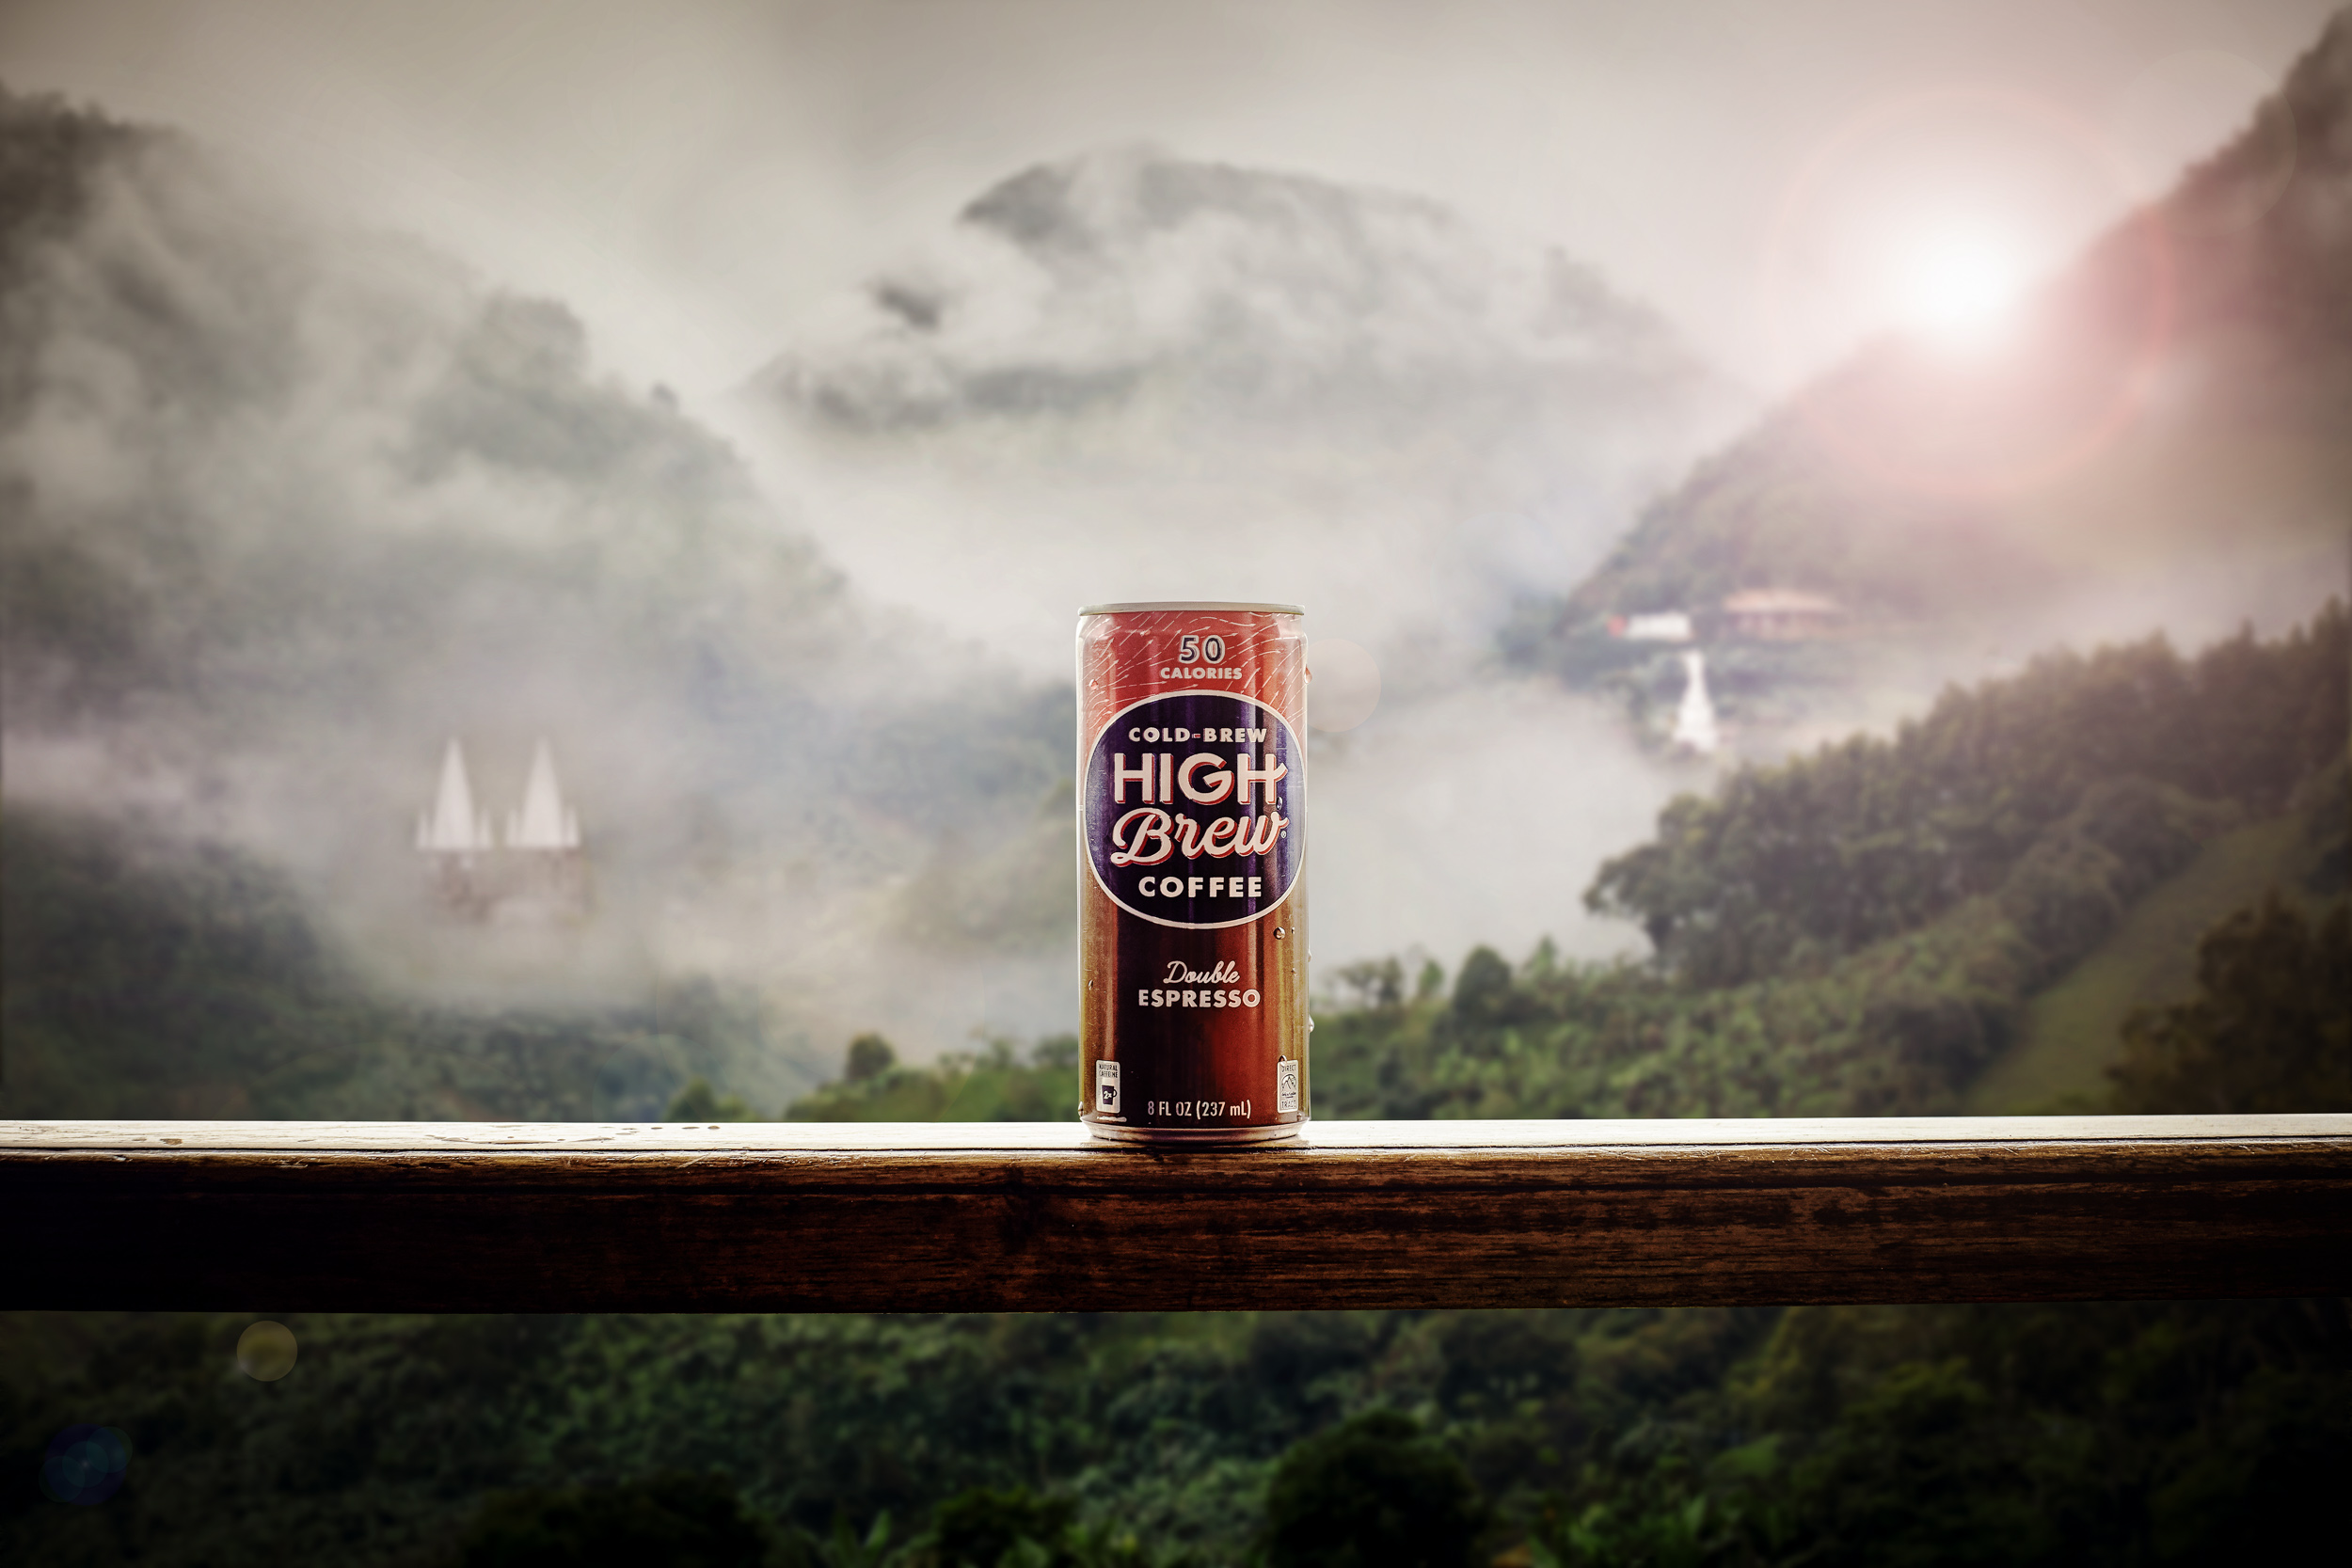 HighBrew-1